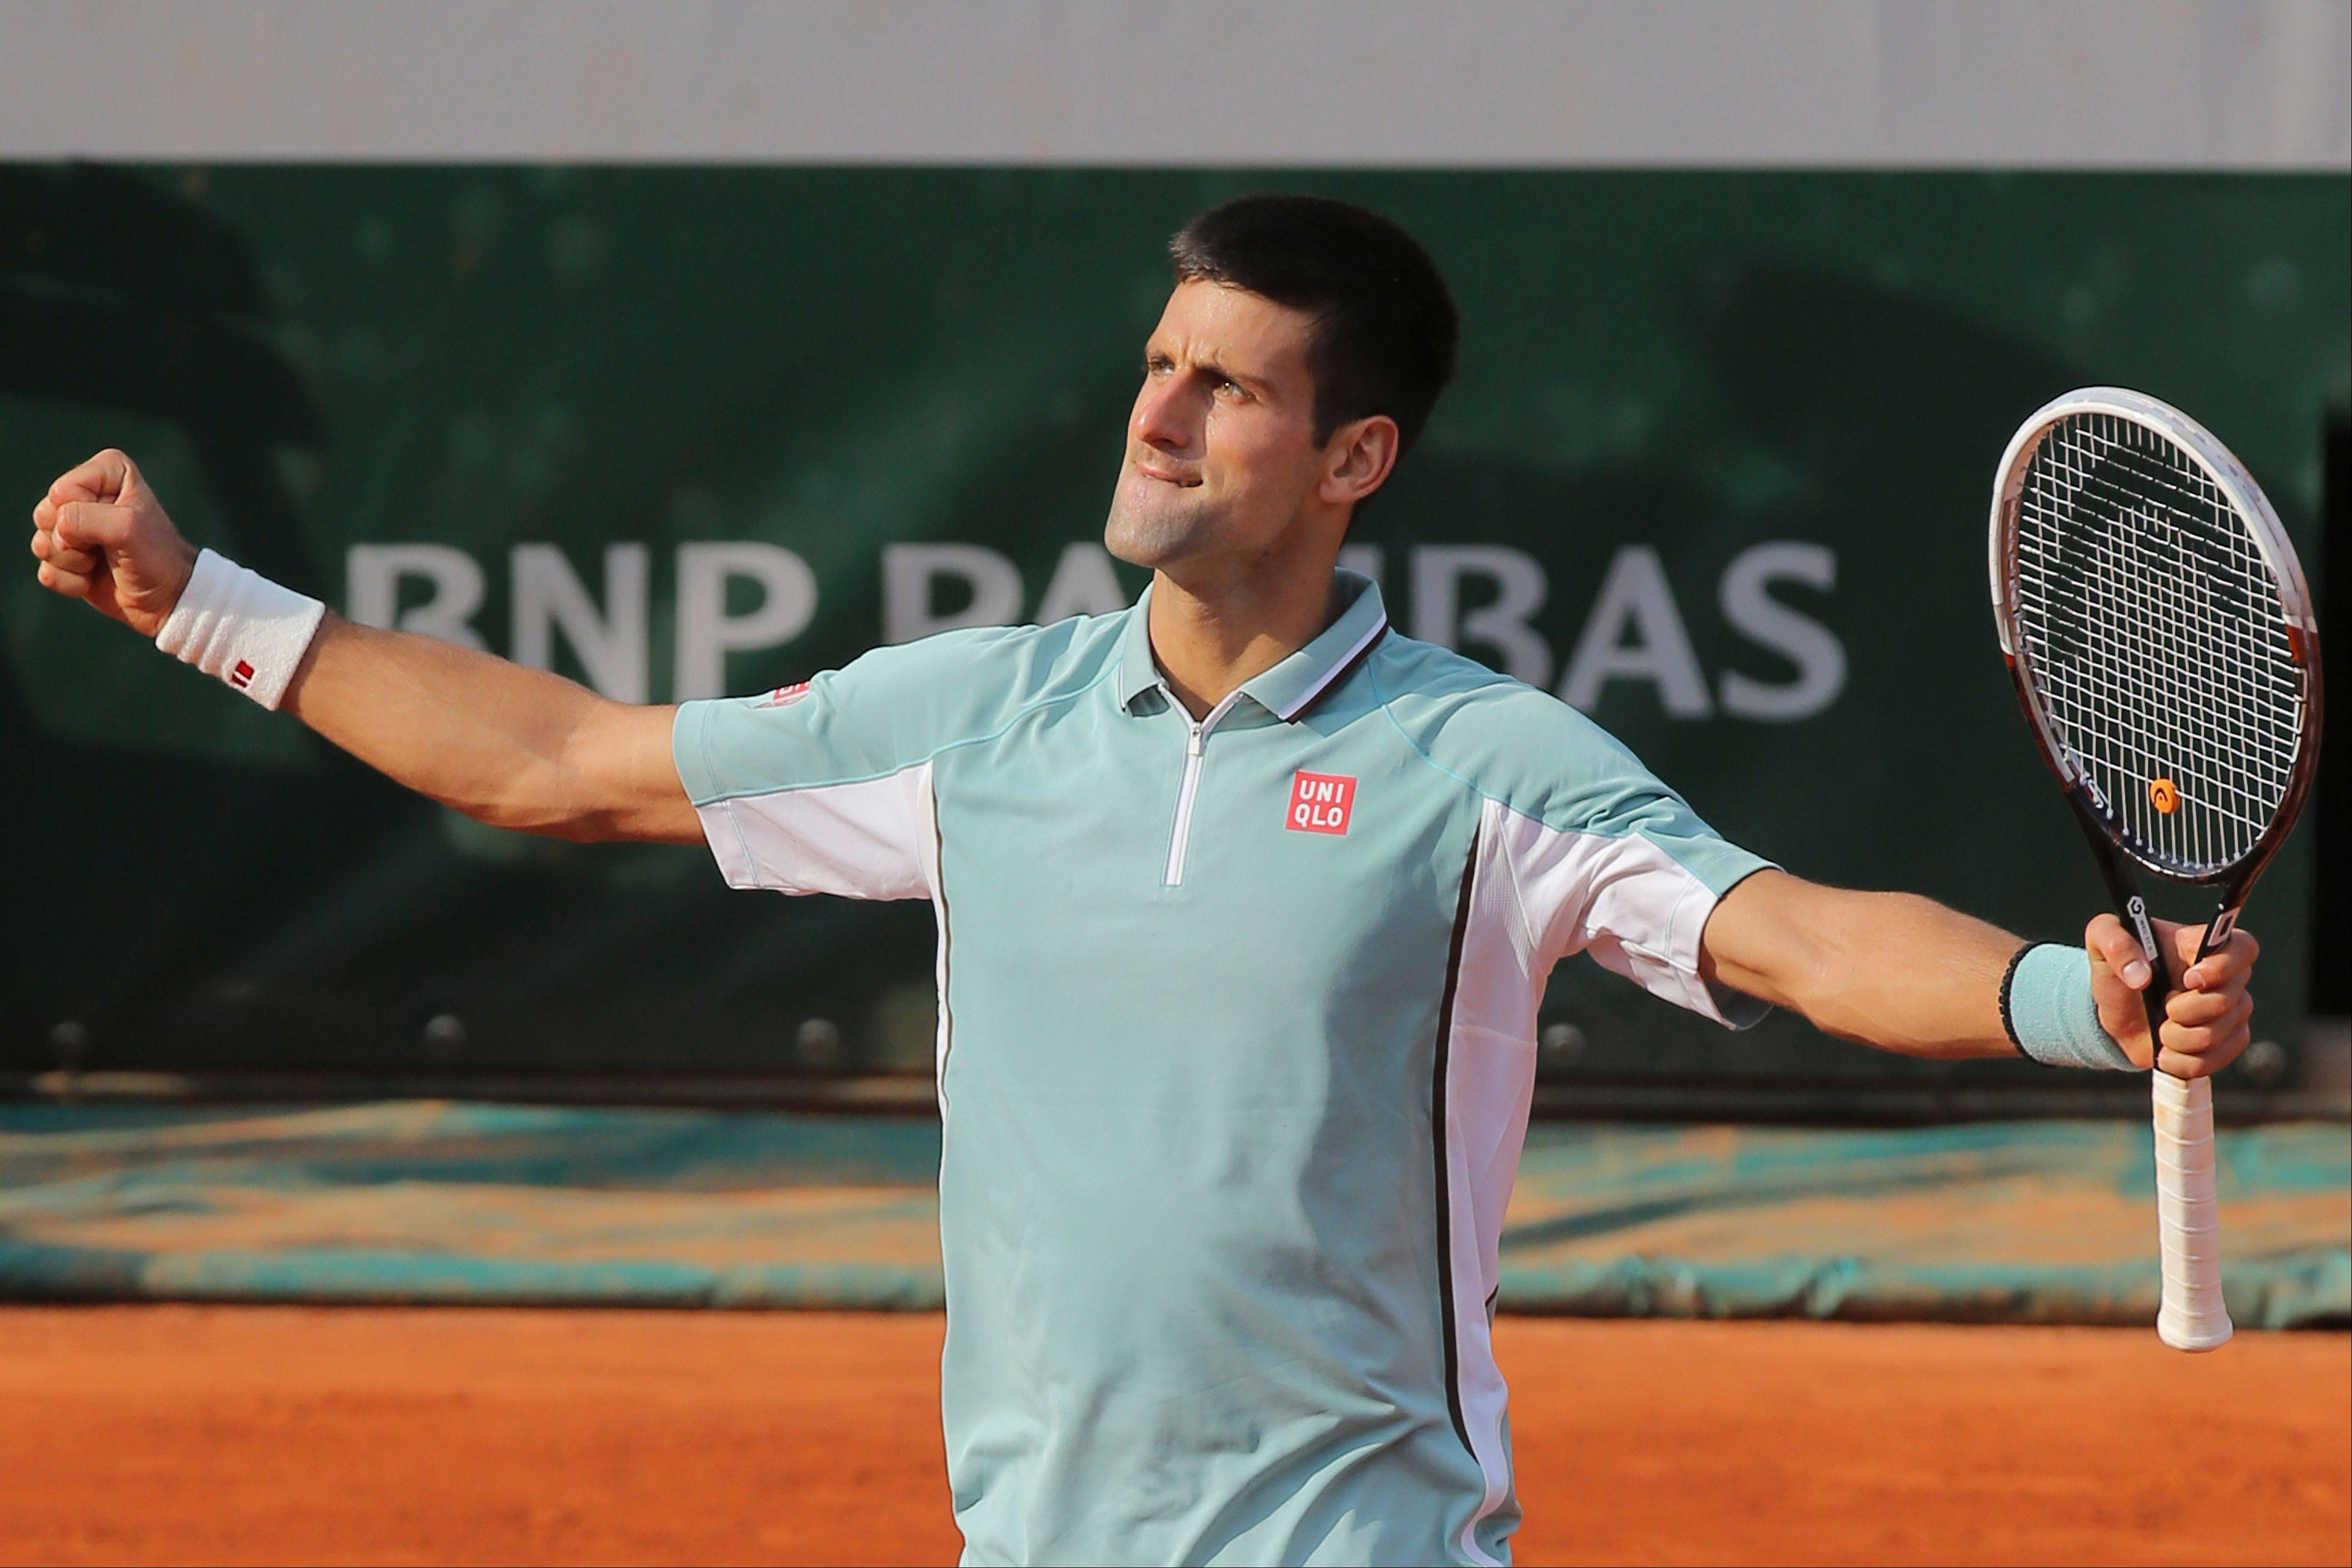 Serbia's Novak Djokovic celebrates defeating Germany's Tommy Haas in three sets 6-3, 7-6, 7-5, in their quarterfinal match at the French Open tennis tournament, at Roland Garros stadium in Paris, Wednesday June 5, 2013.